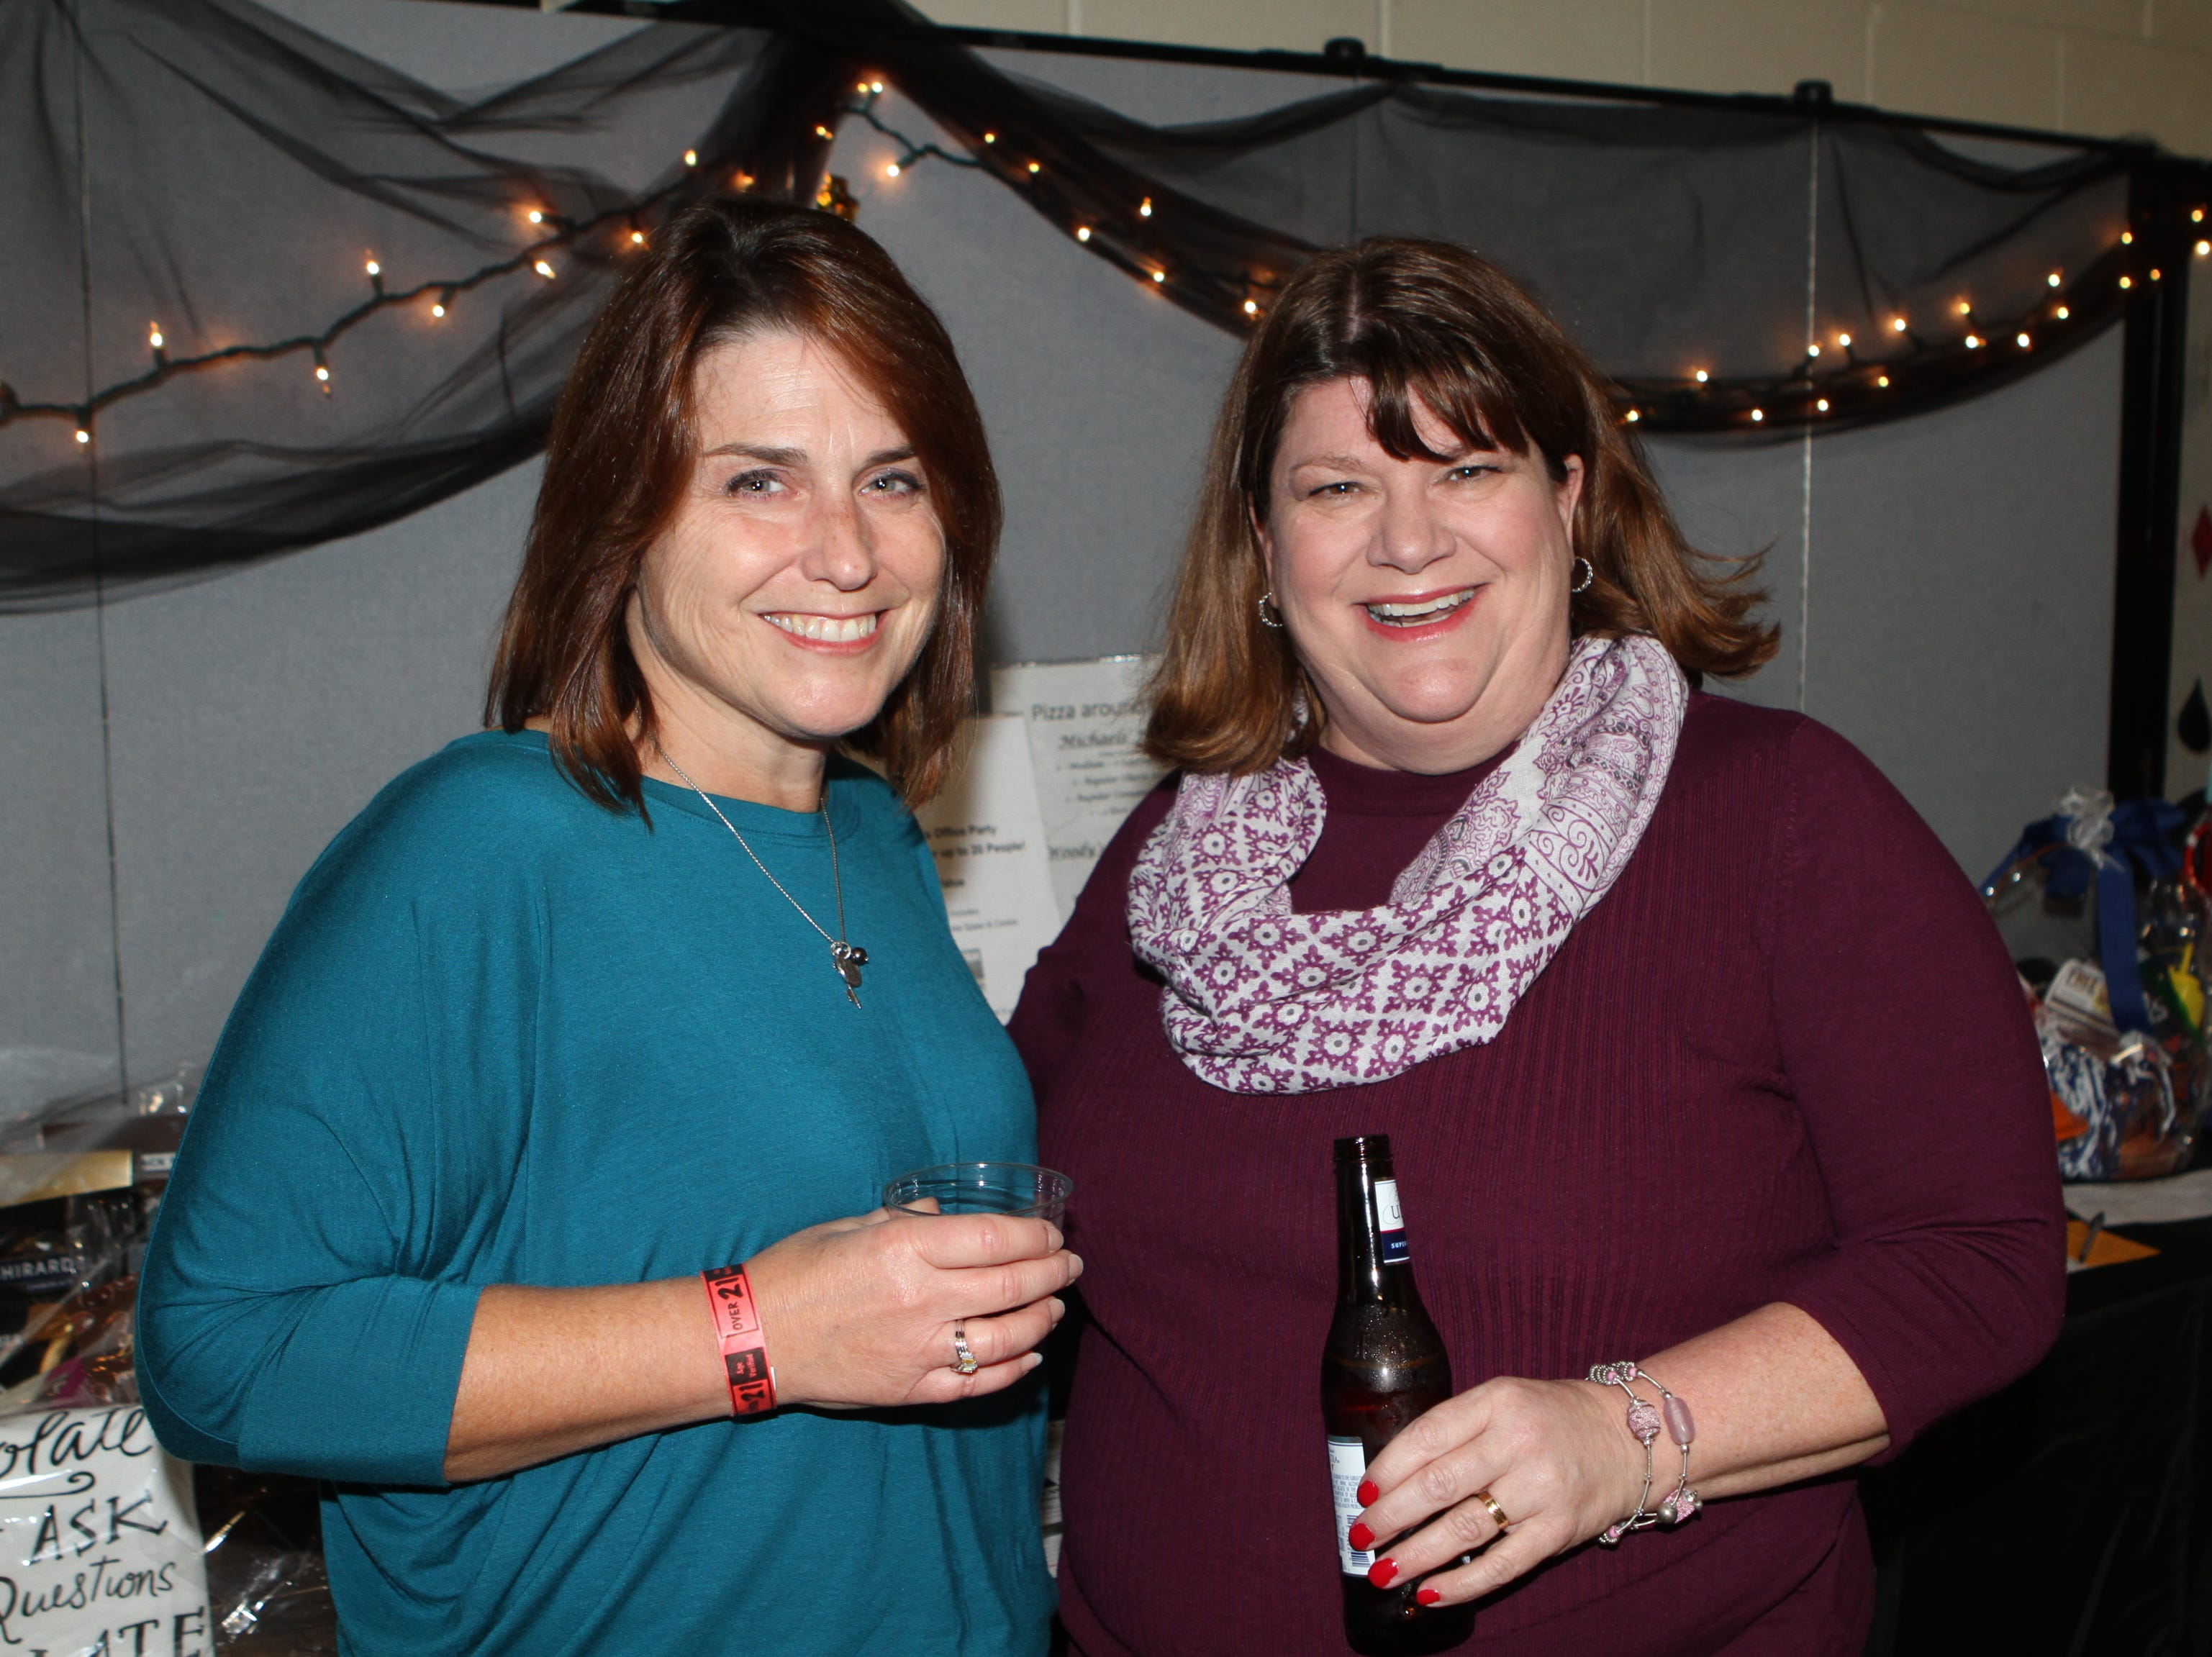 Michele Wieber and Jill Johnson at Casino Night at Immaculate Conception School on Saturday, Nov. 3, 2018.